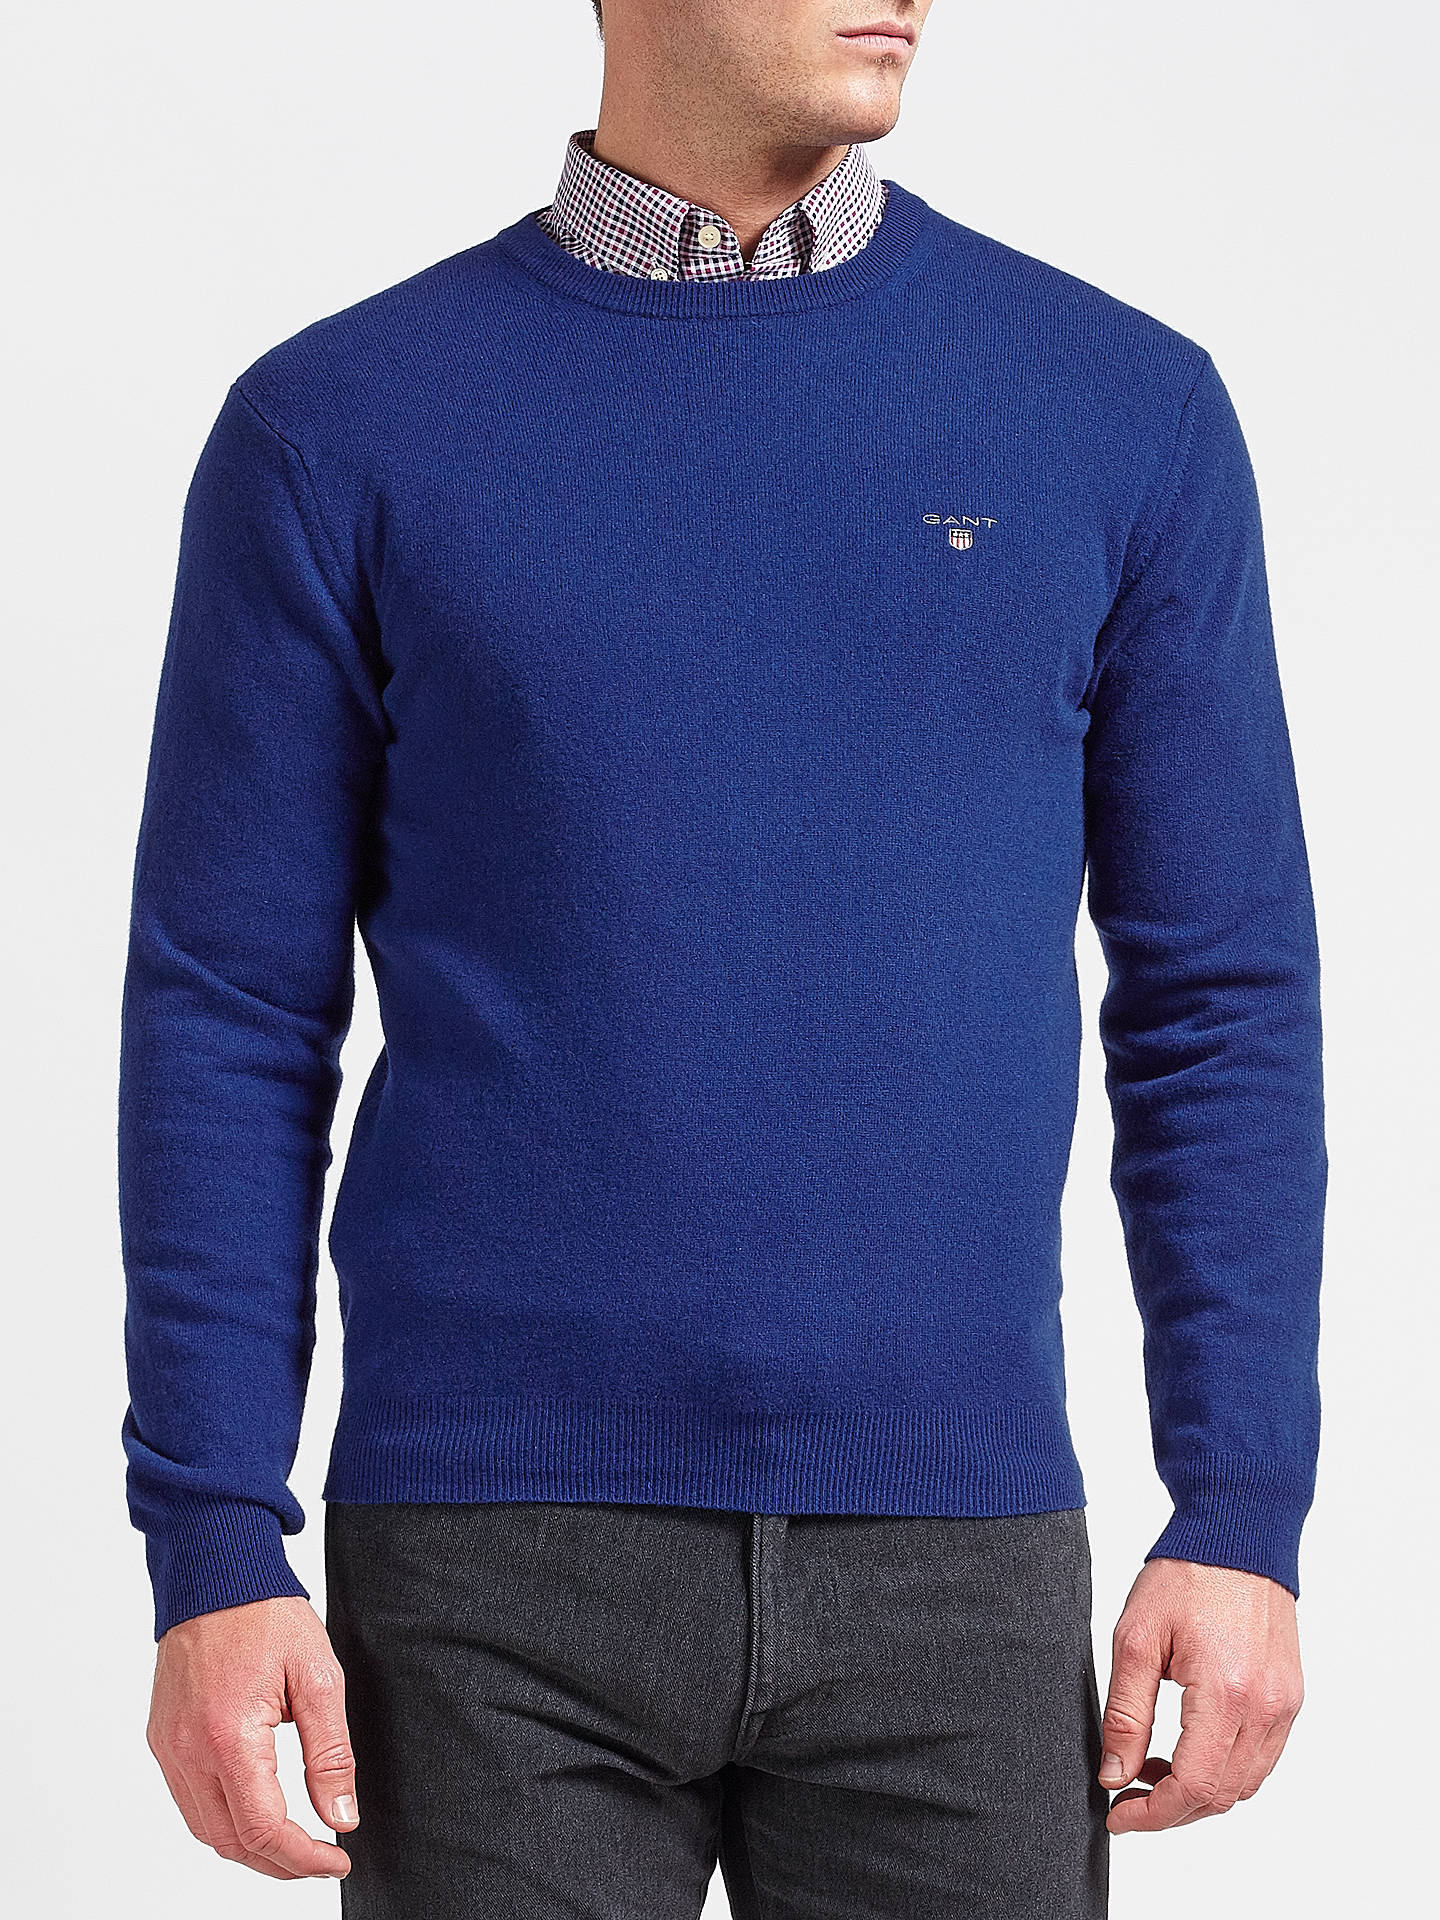 534c858ec9f725 Buy Gant Superfine Lambswool Crew Neck Jumper, Yale Blue, M Online at  johnlewis.